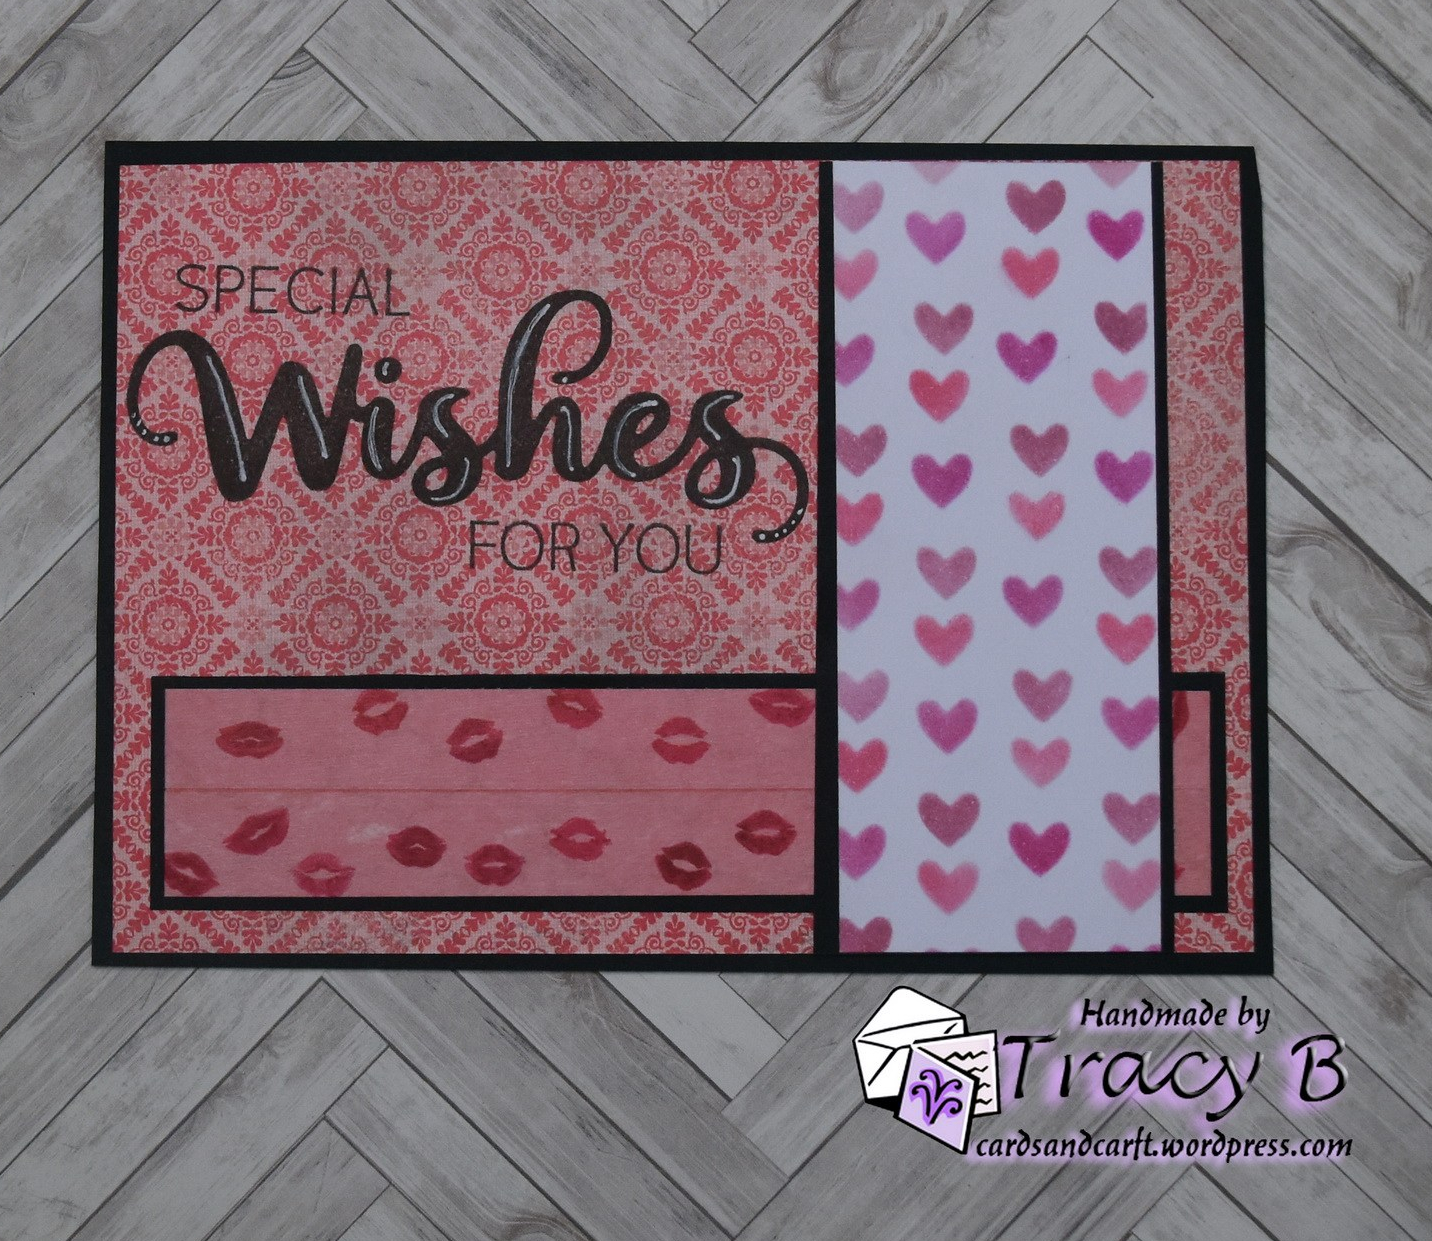 02 14 Special Wishes